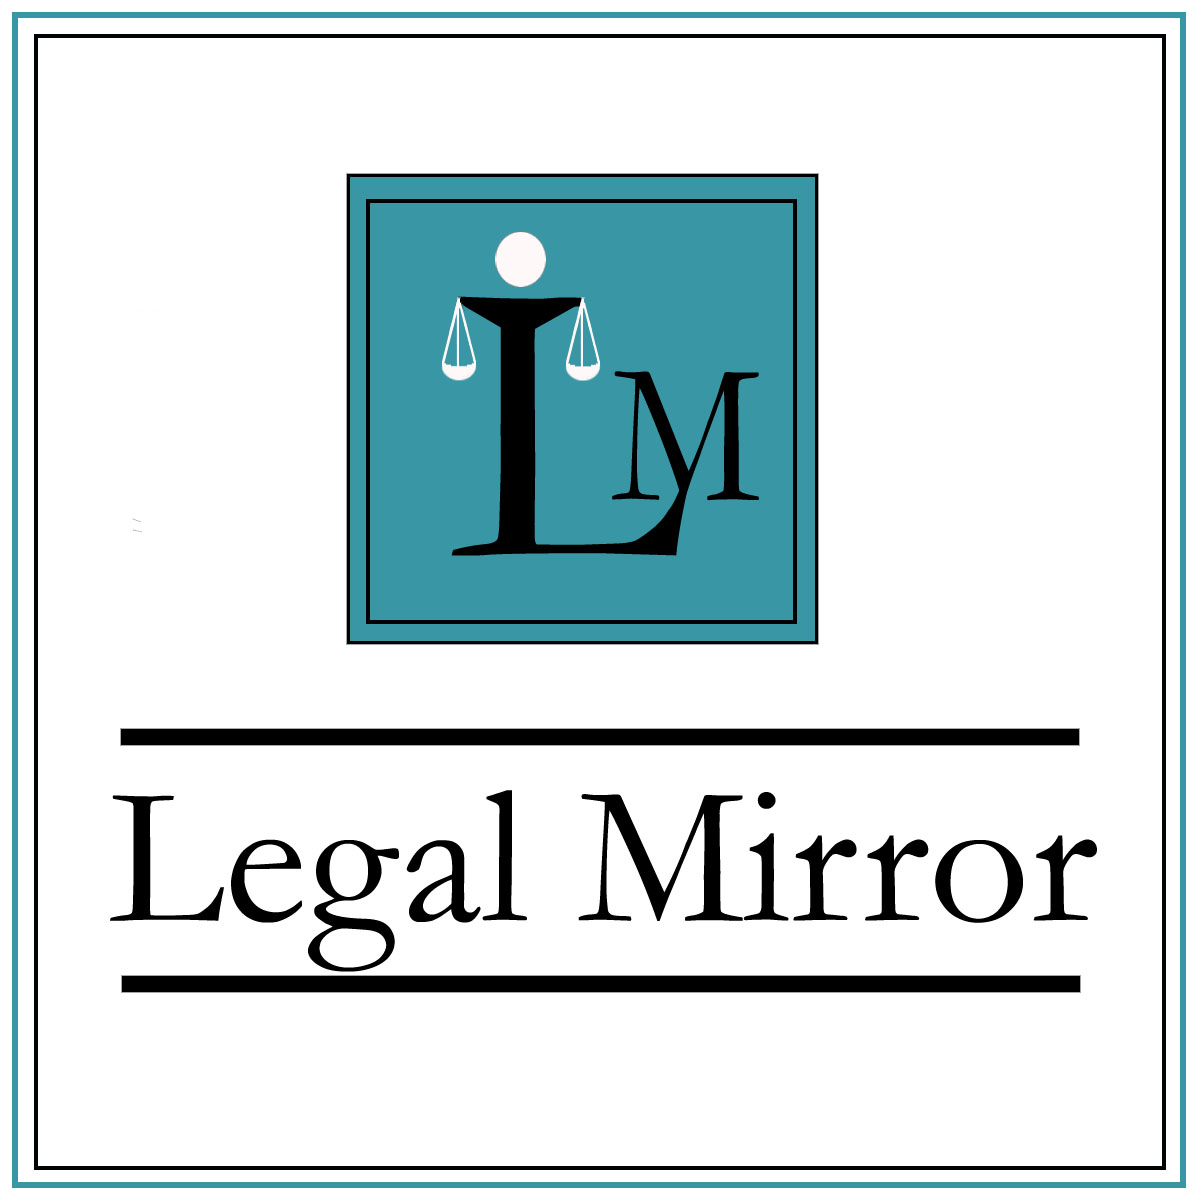 CfP legal mirror volume 5 issue 1